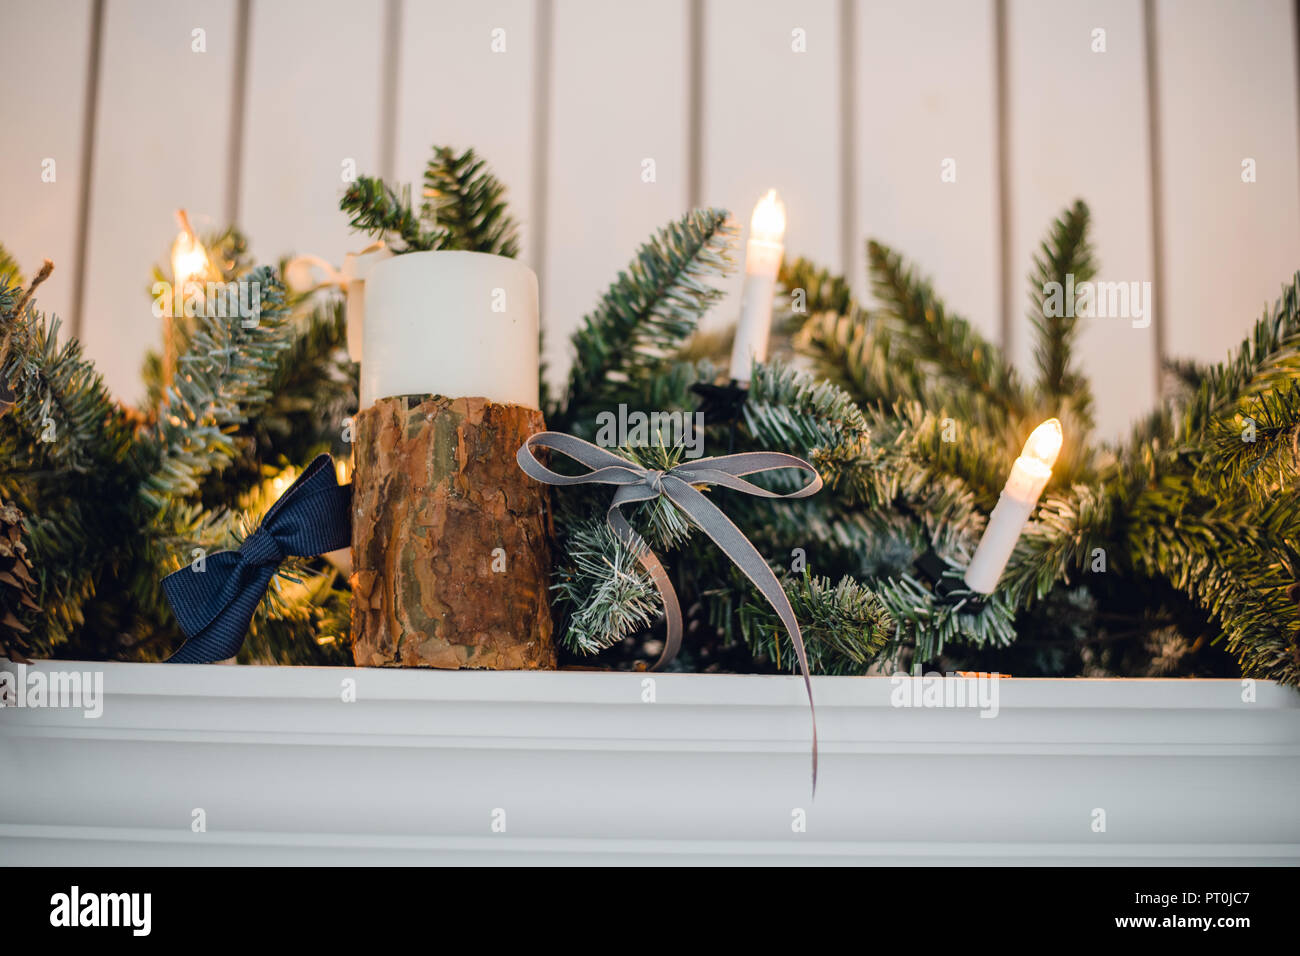 Christmas Fireplace Xmas Lights Decoration Tree Branches Candles